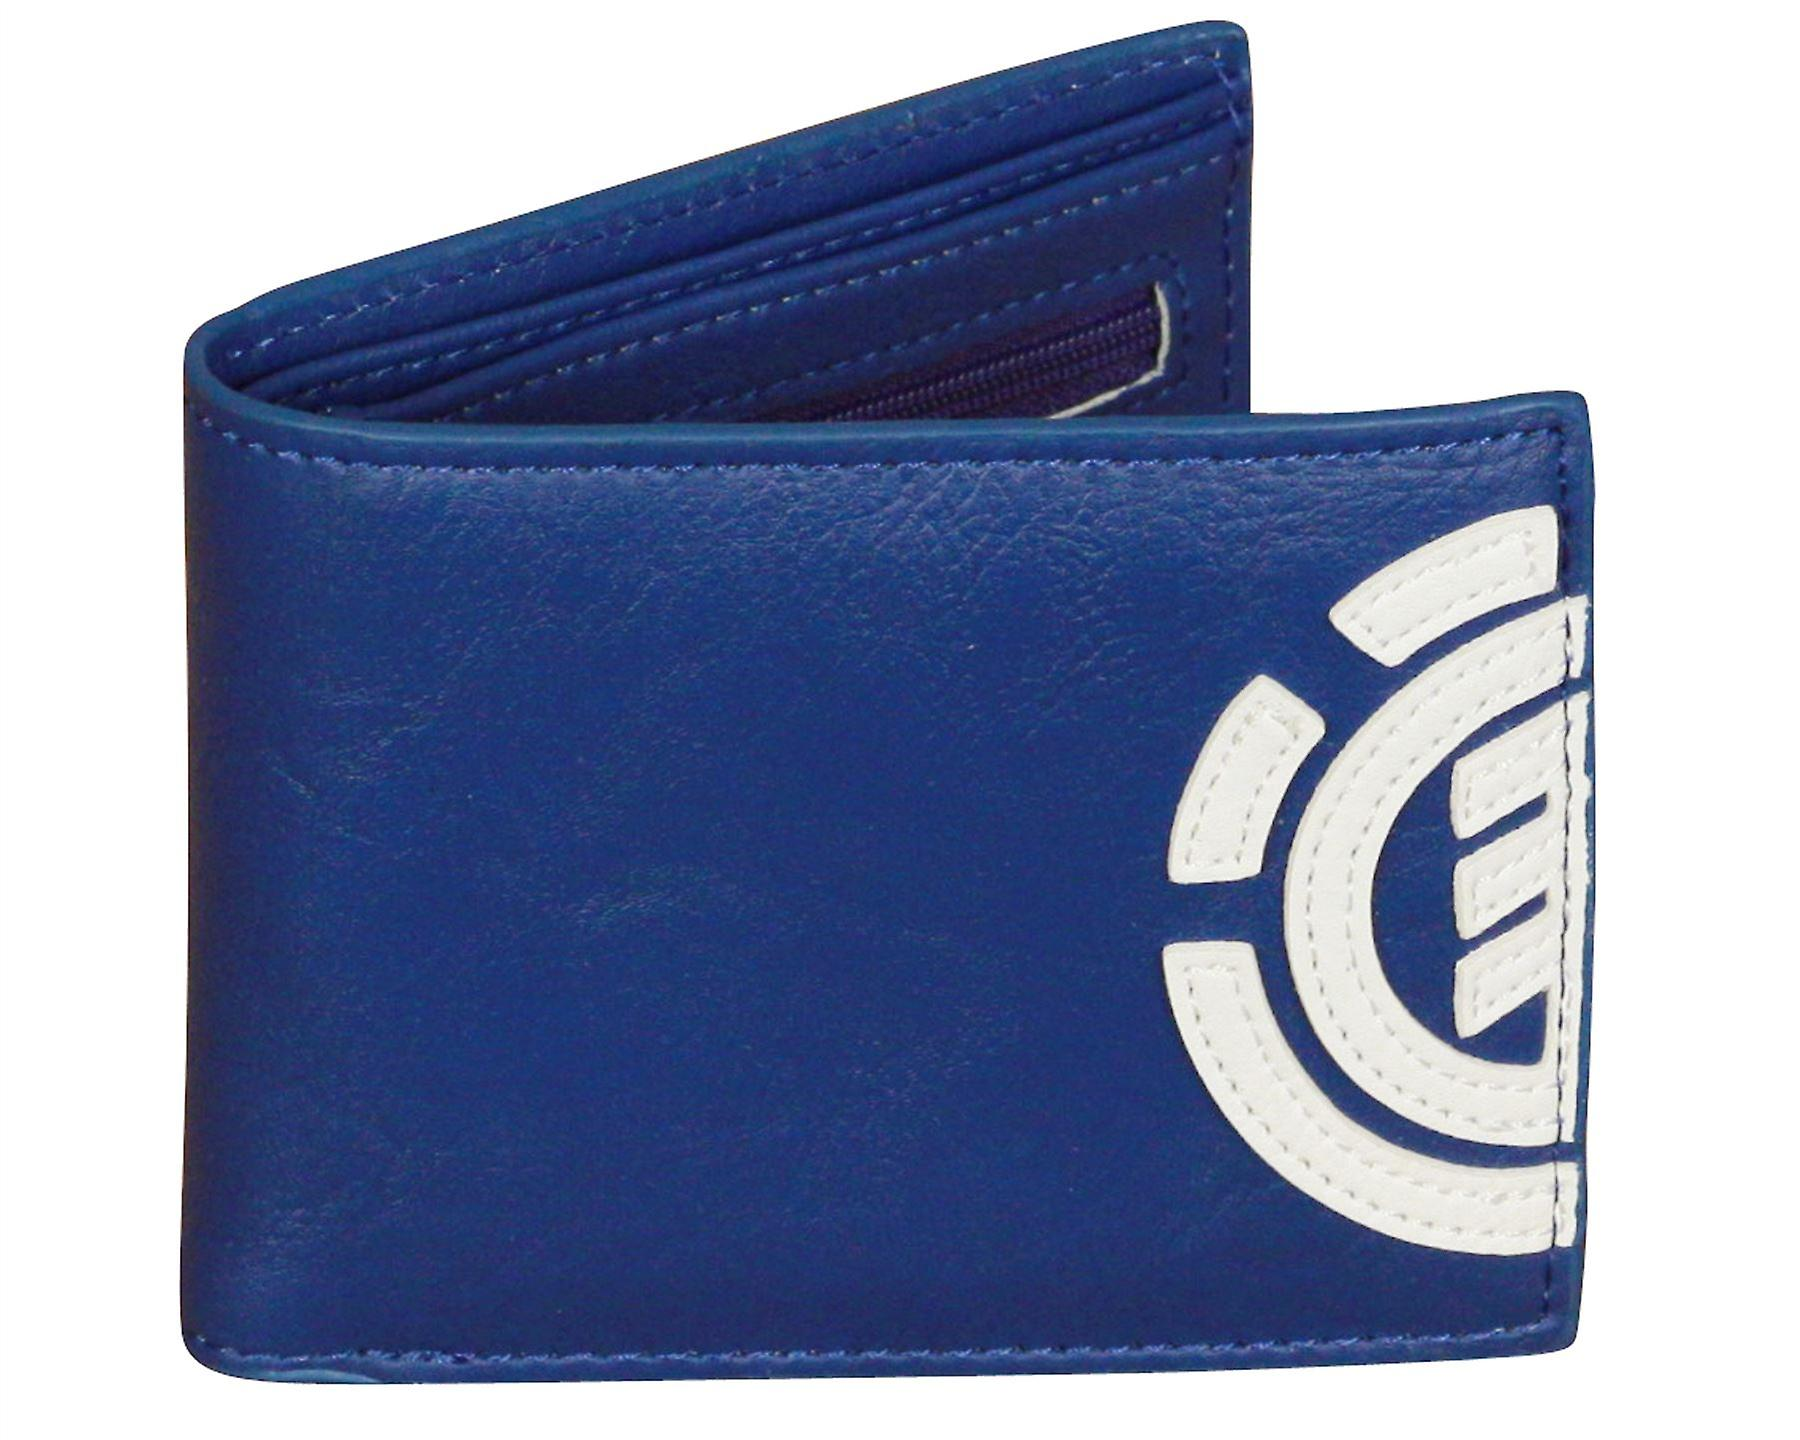 Element Wallet with CC, Note and Coin Pockets ~ Daily boise blue